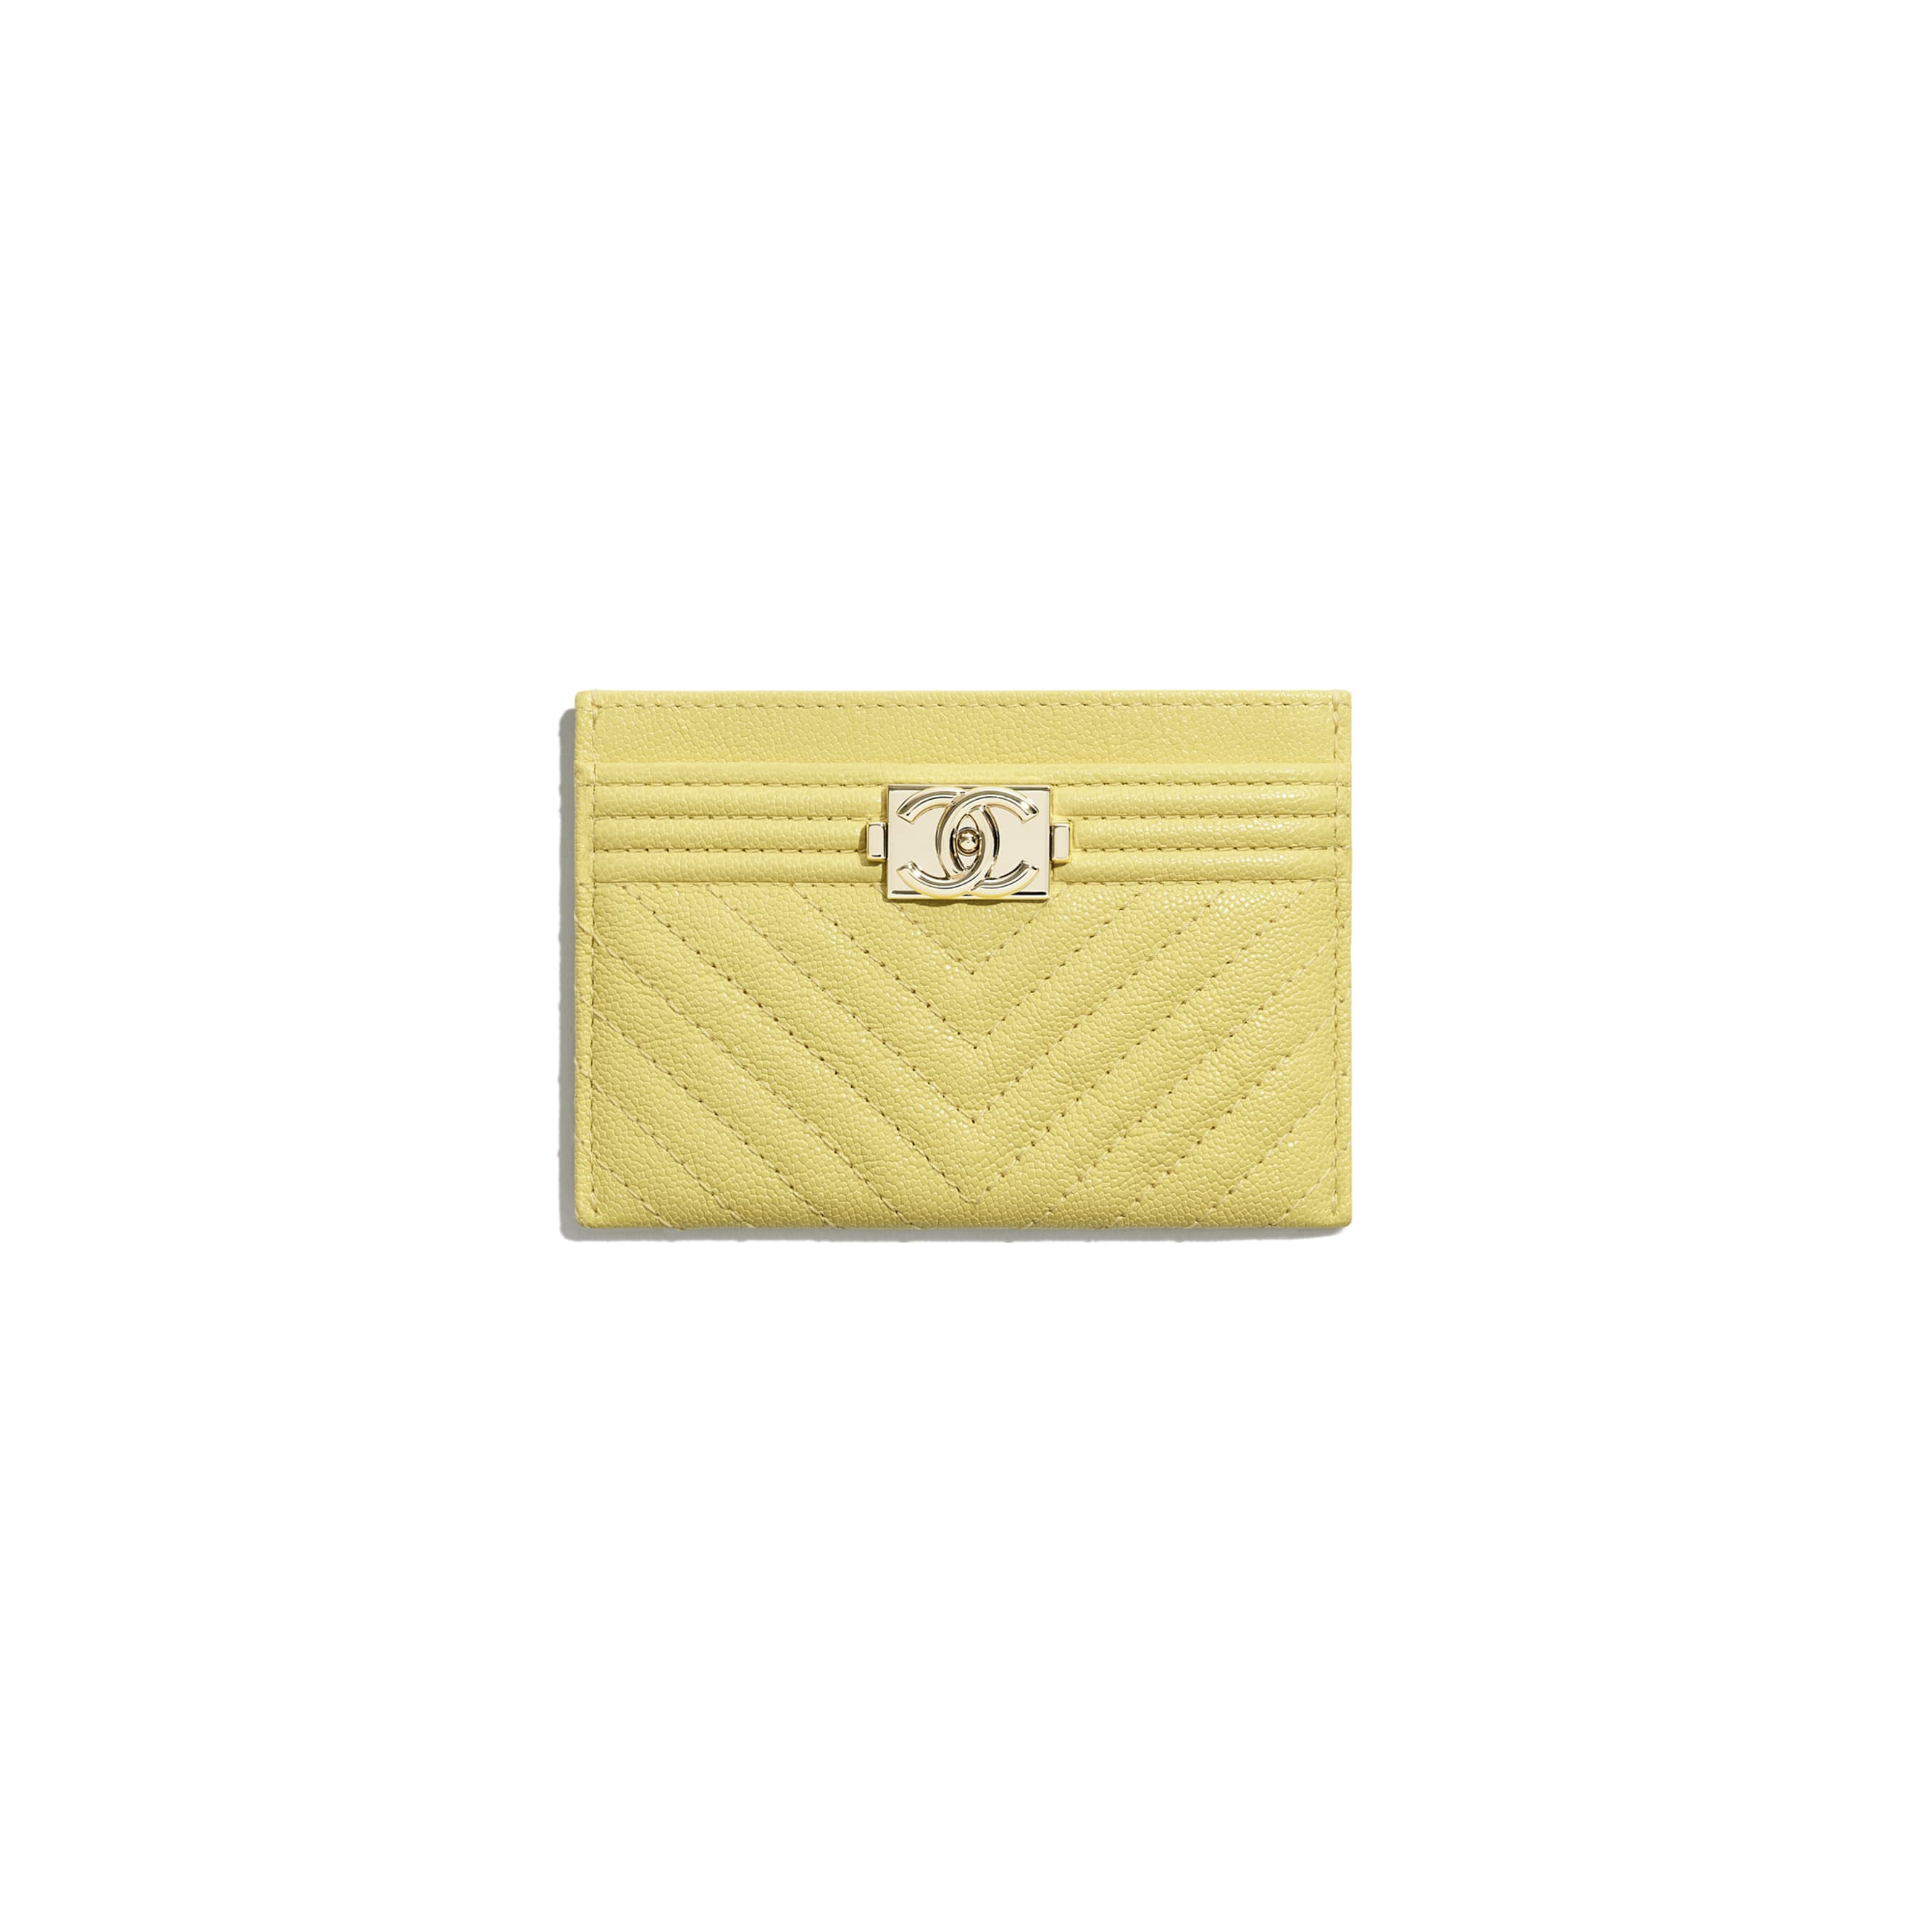 BOY CHANEL Card Holder - Yellow - Grained Calfskin & Gold-Tone Metal - CHANEL - Default view - see standard sized version